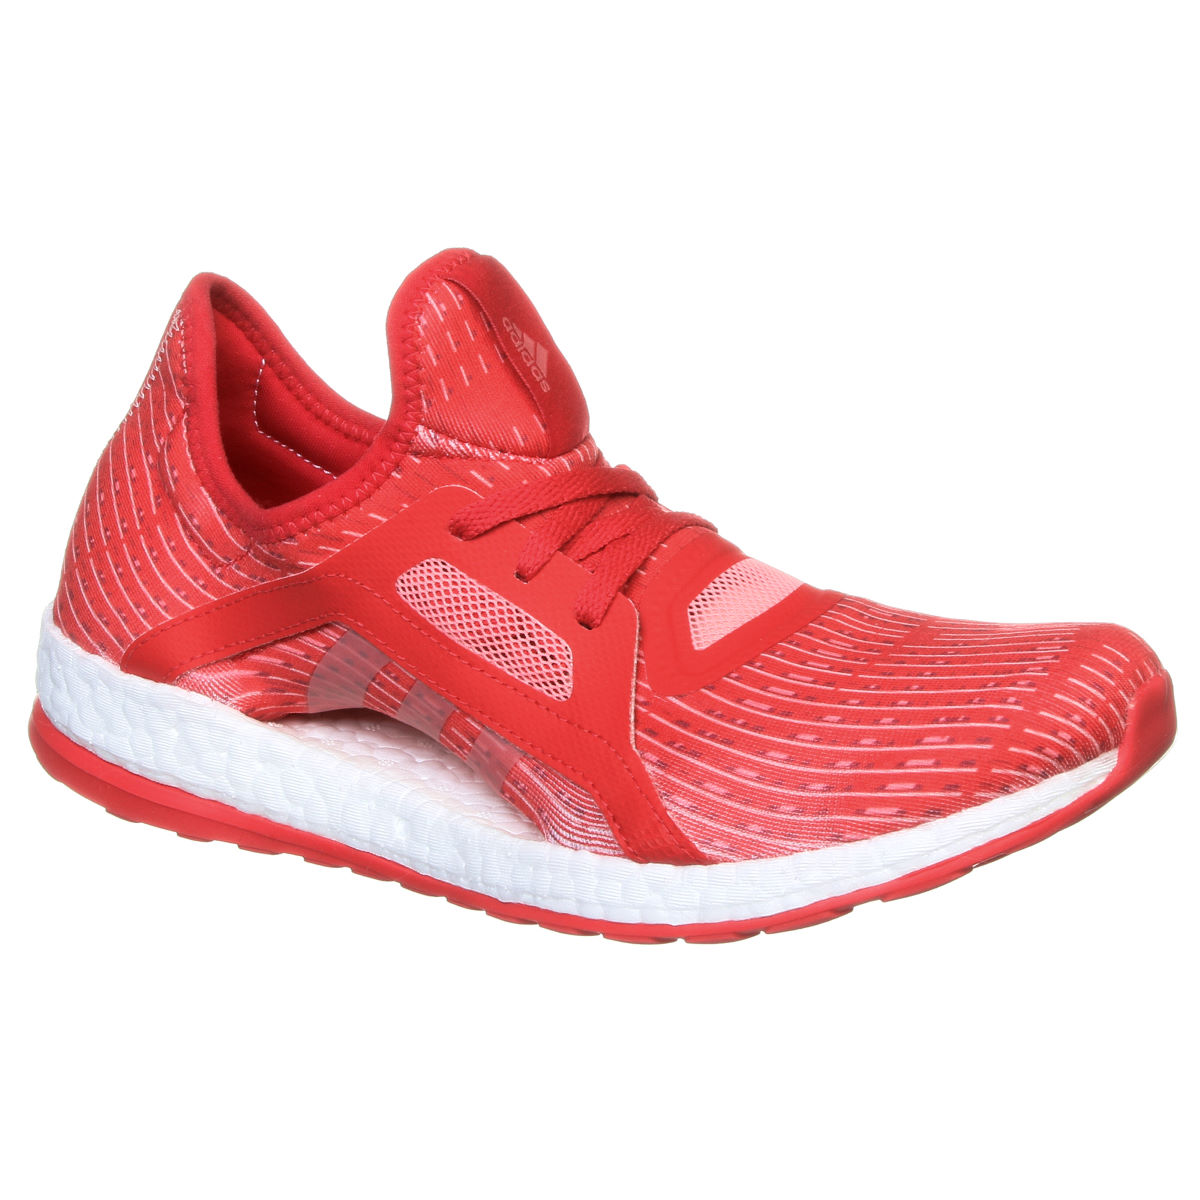 Adidas Womens Pure Boost X Shoes (Red AW16)   Training Running Shoes